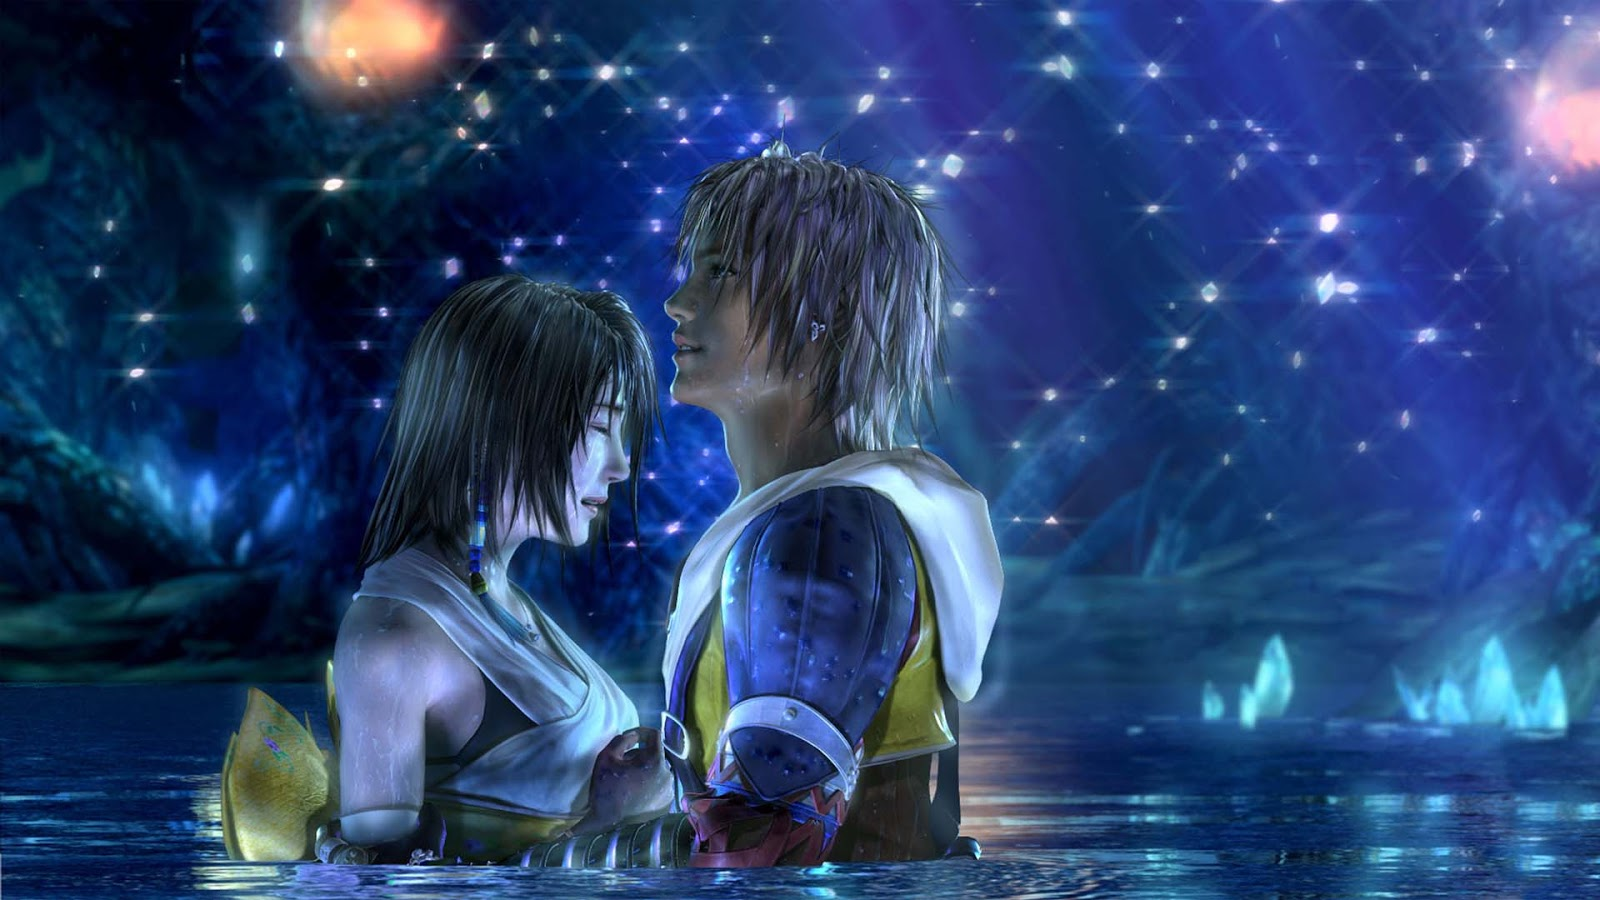 Animated Love Couple HD Wallpapers Download Hd Wallpapers 2u 1600x900